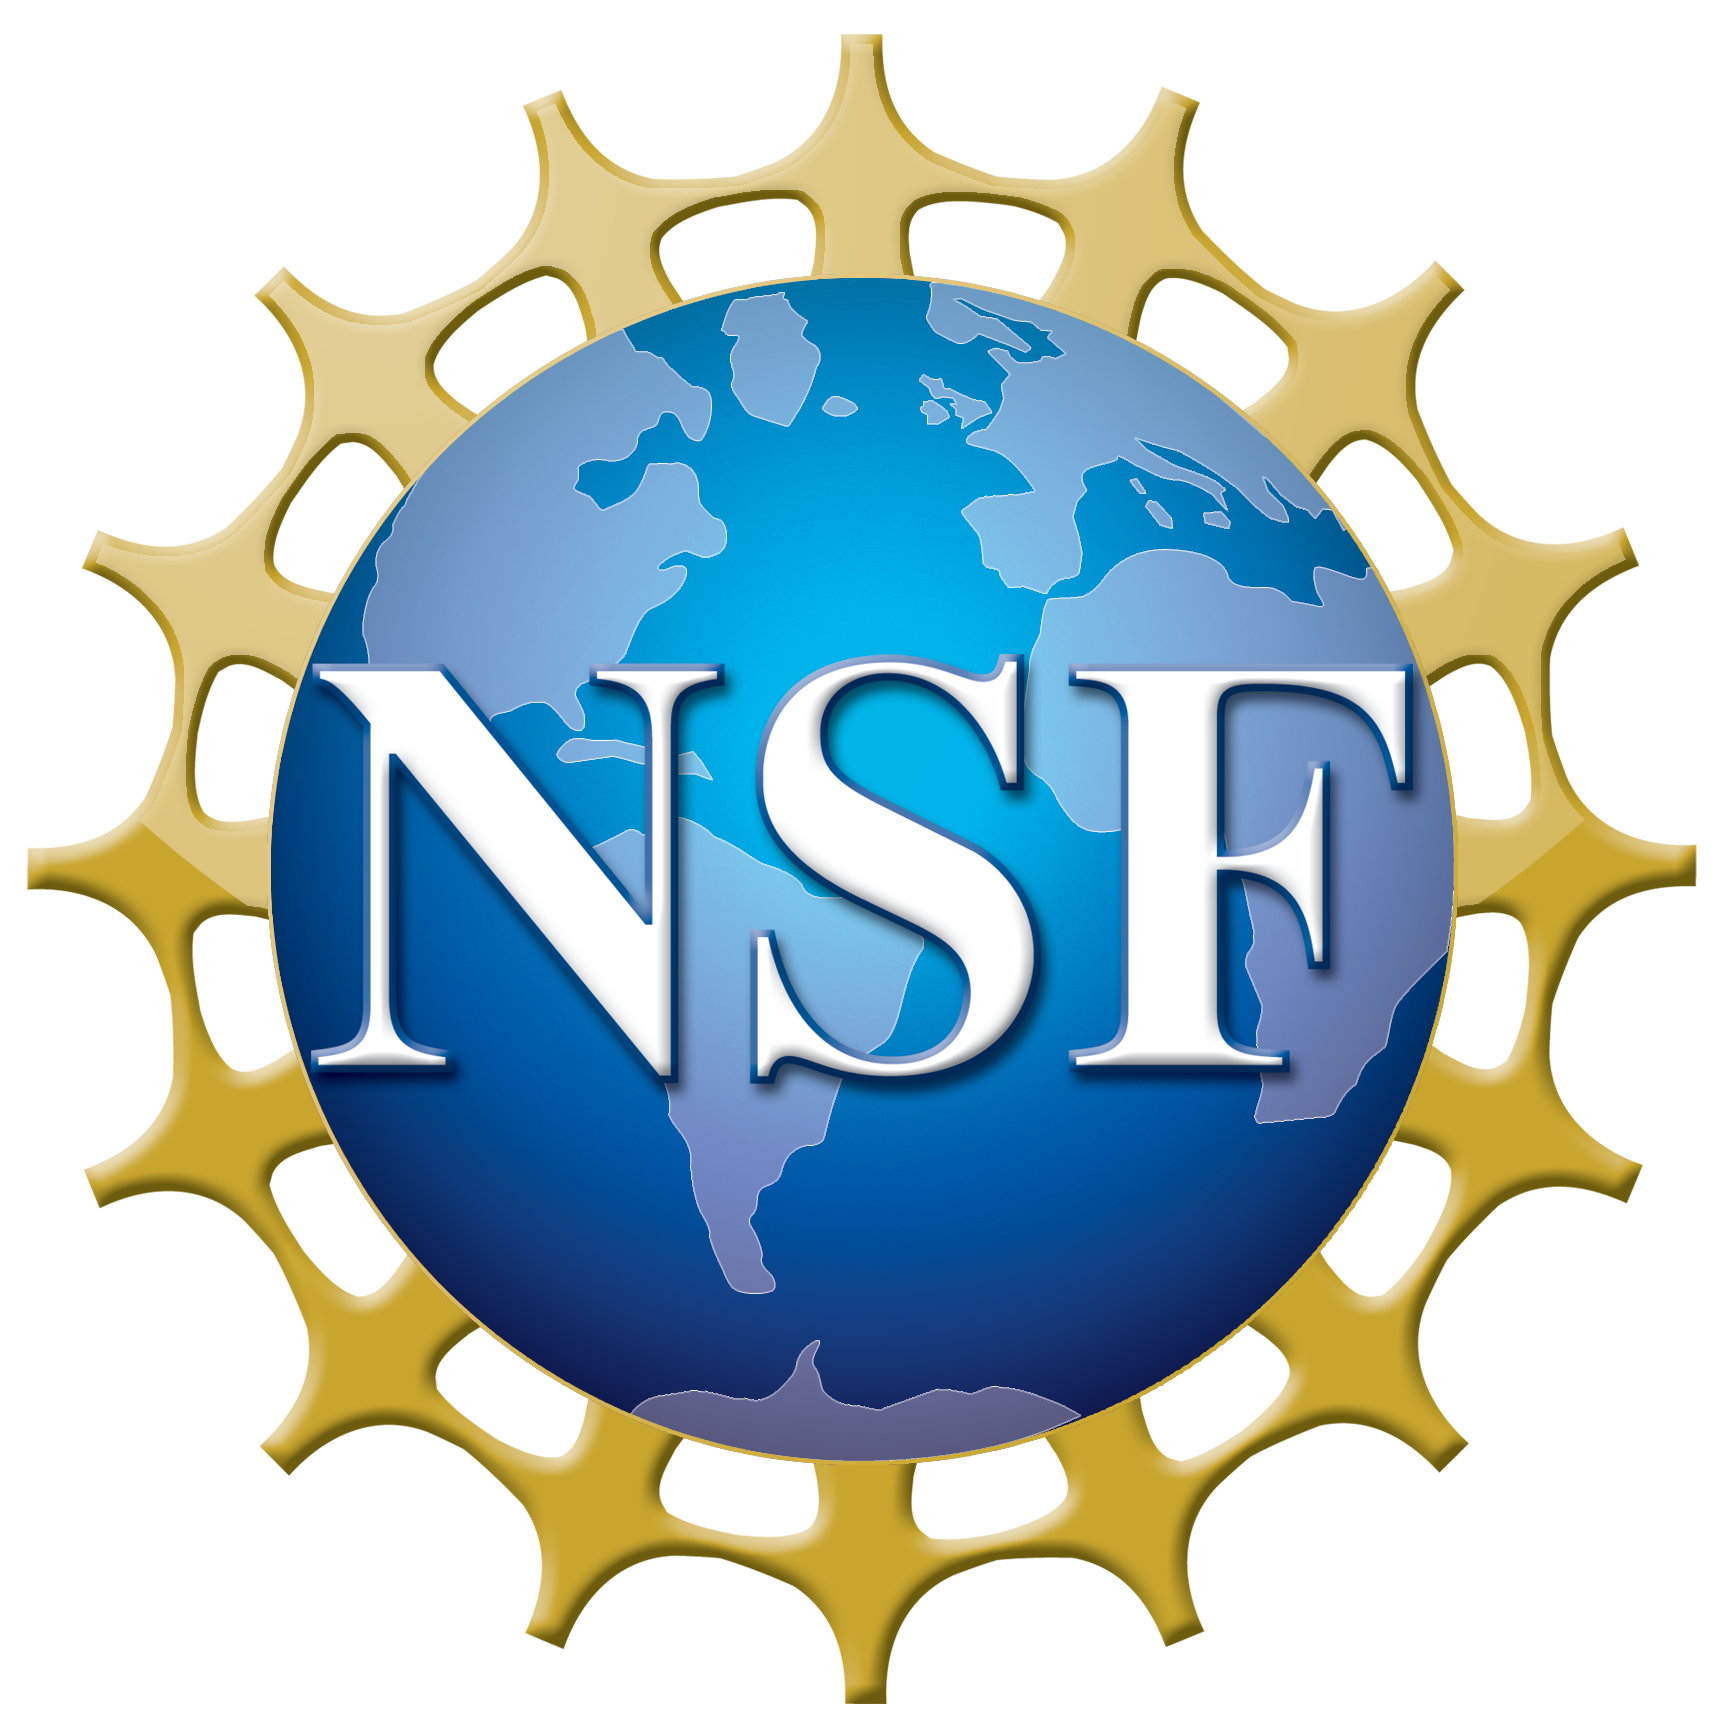 National Science Foundation - Wikipedia